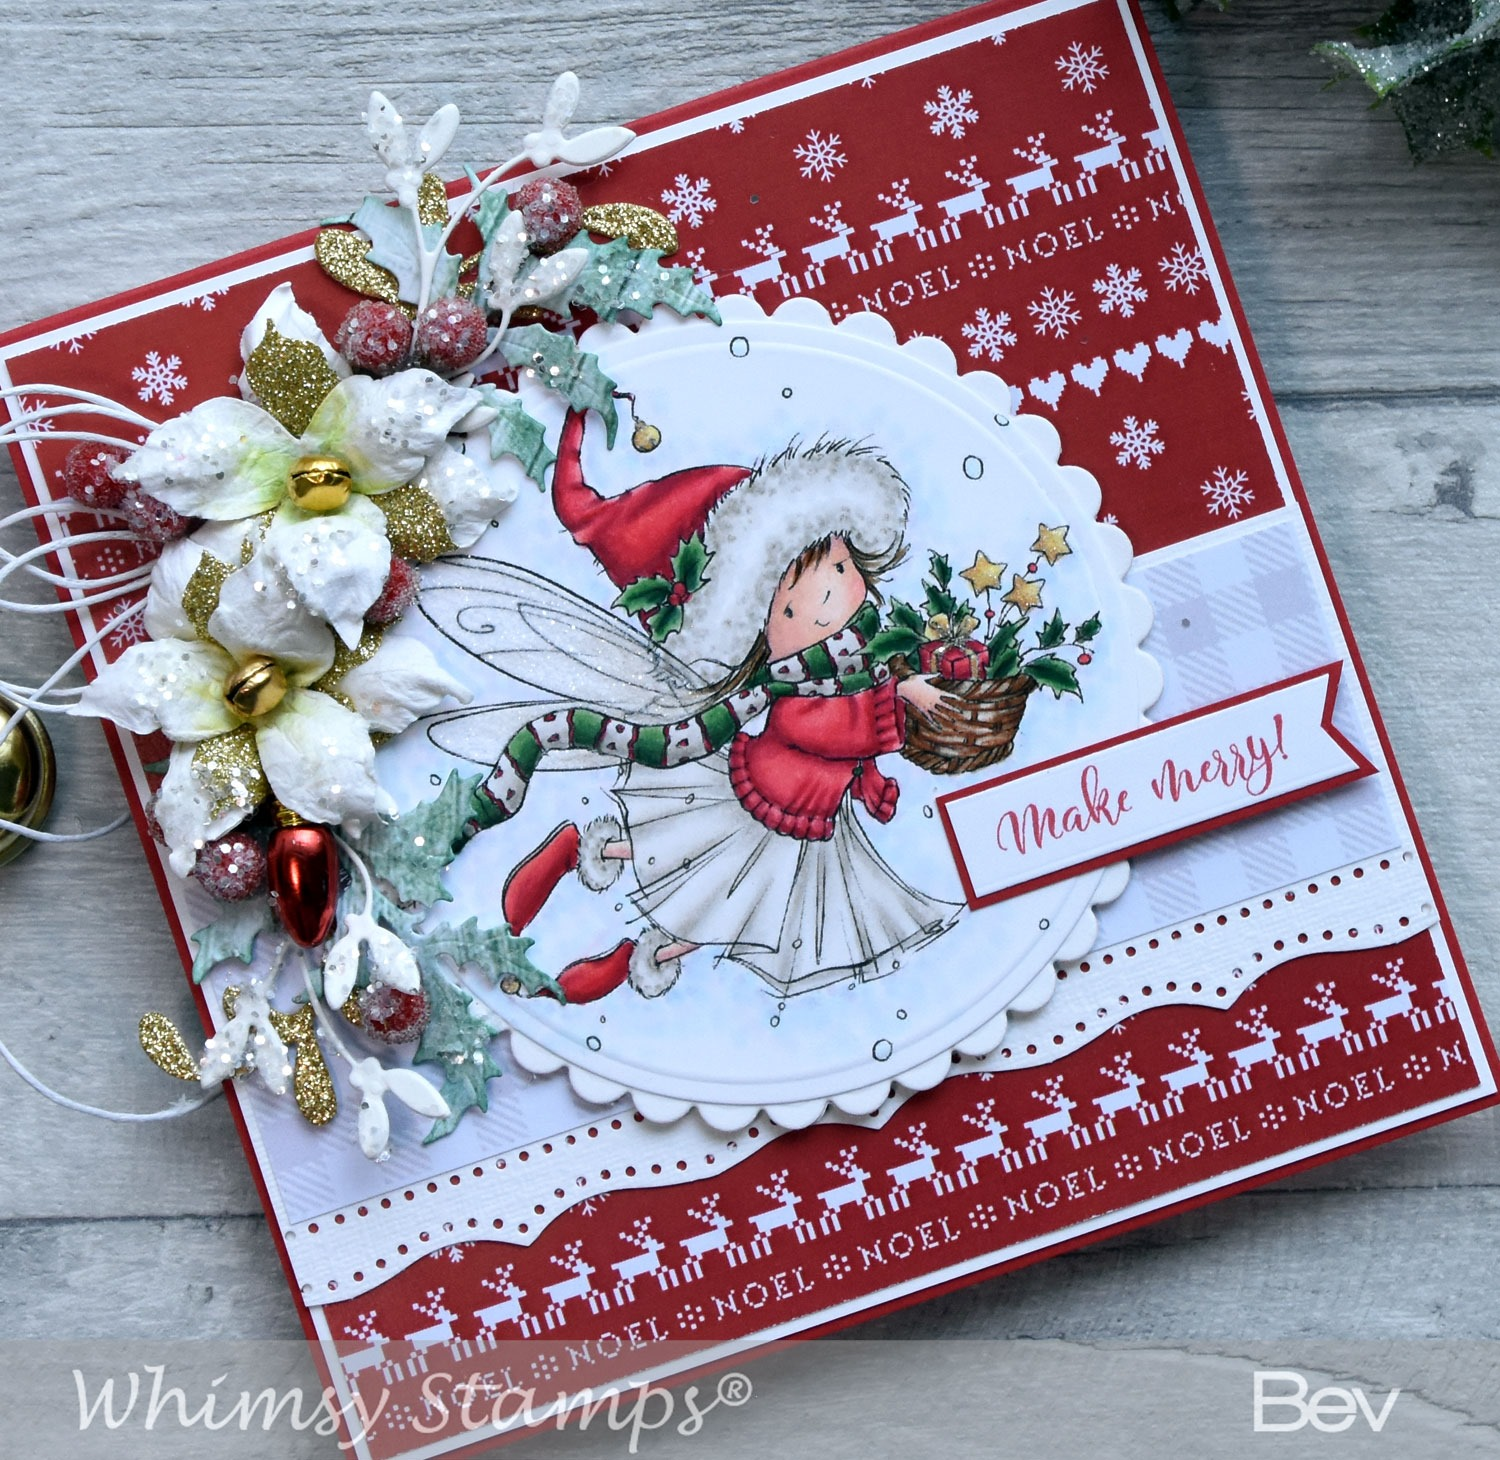 [bev-rochester-whimsy-merry-wishes-tls2%5B2%5D]